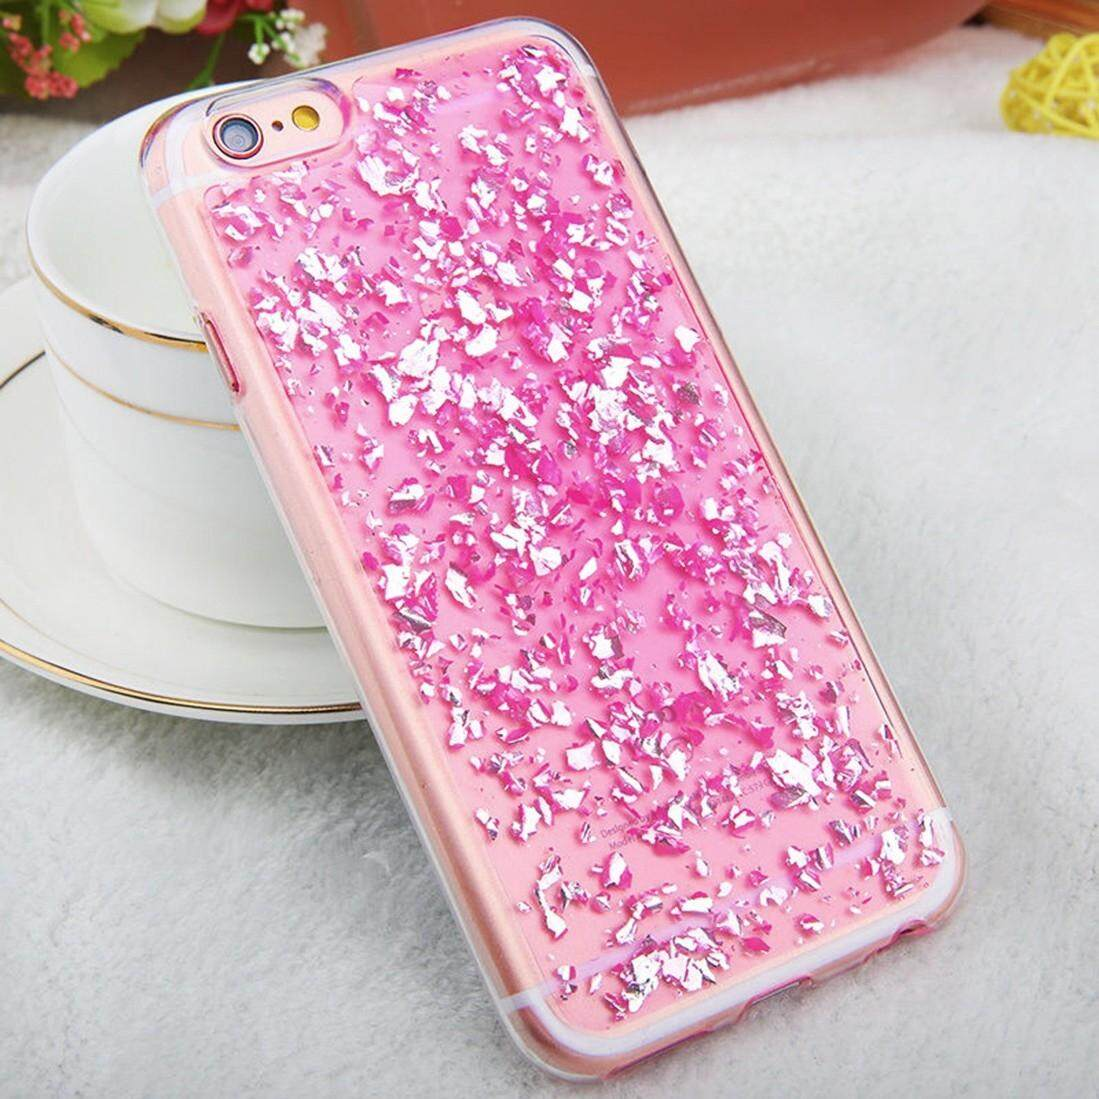 For iPhone 6 Plus & 6s Plus Scattered Platinum Pattern TPU Protective Case(Pink) - intl